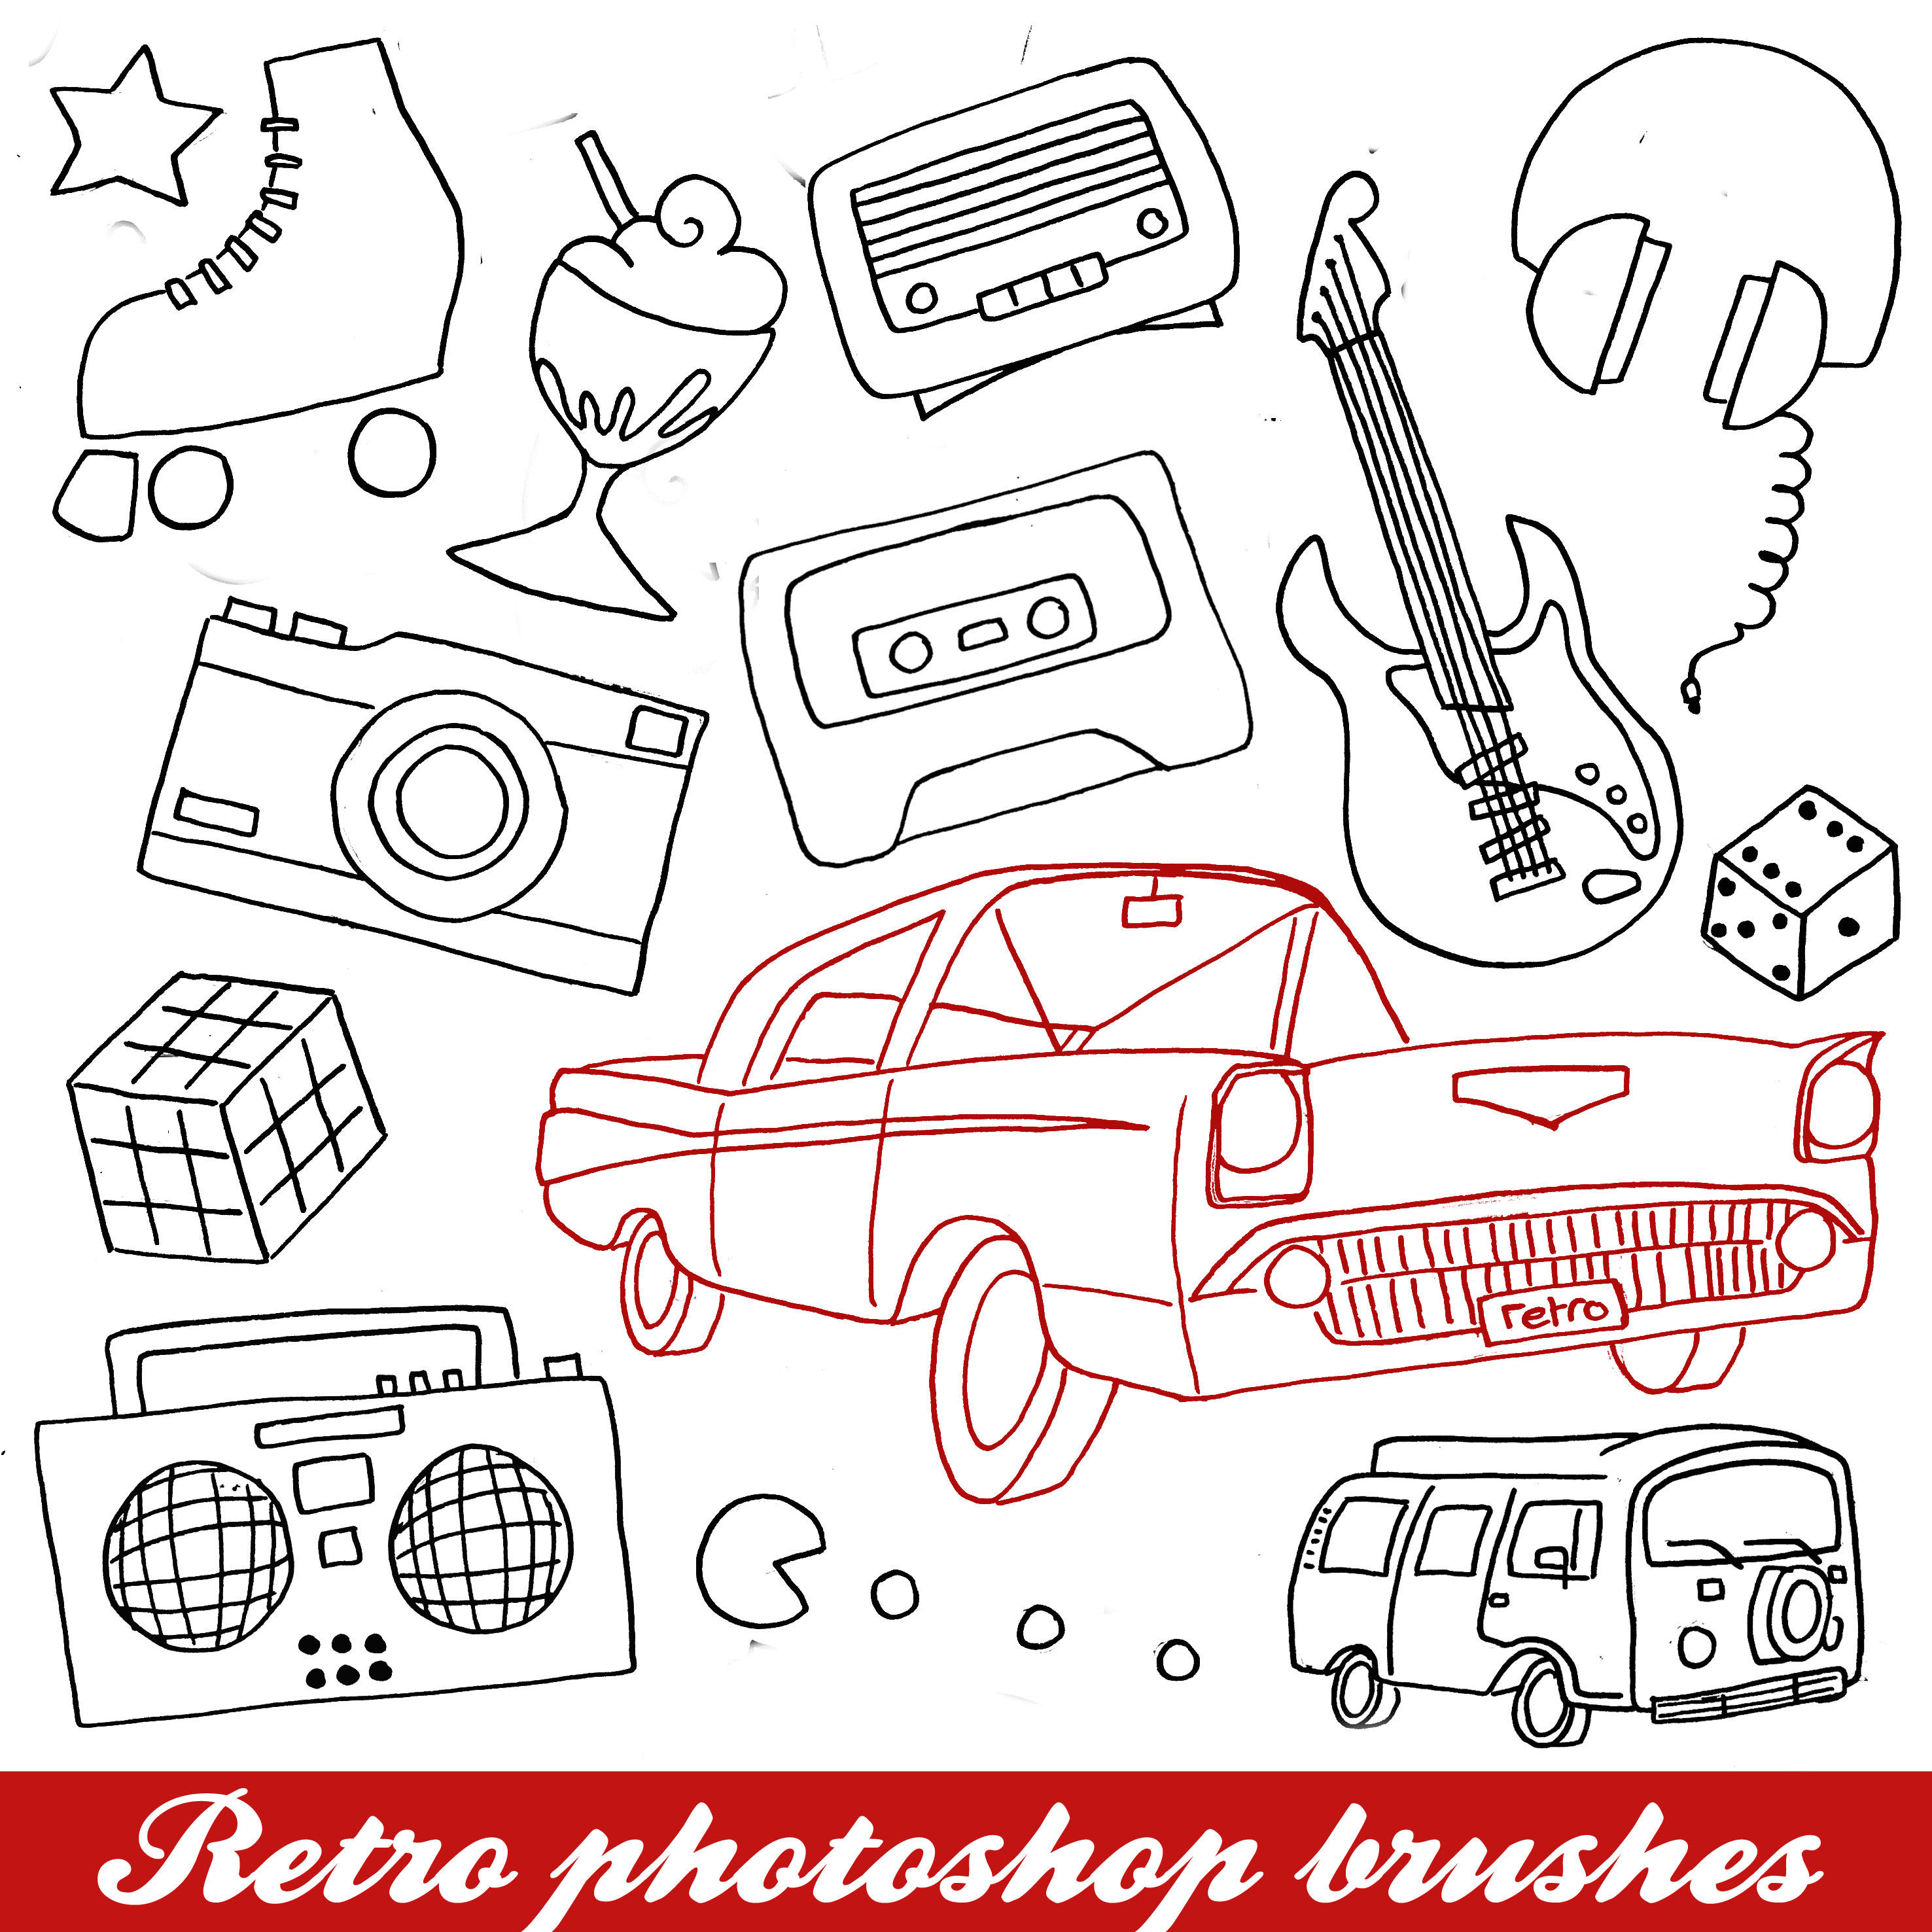 Retro lineart brushes by Angelic14